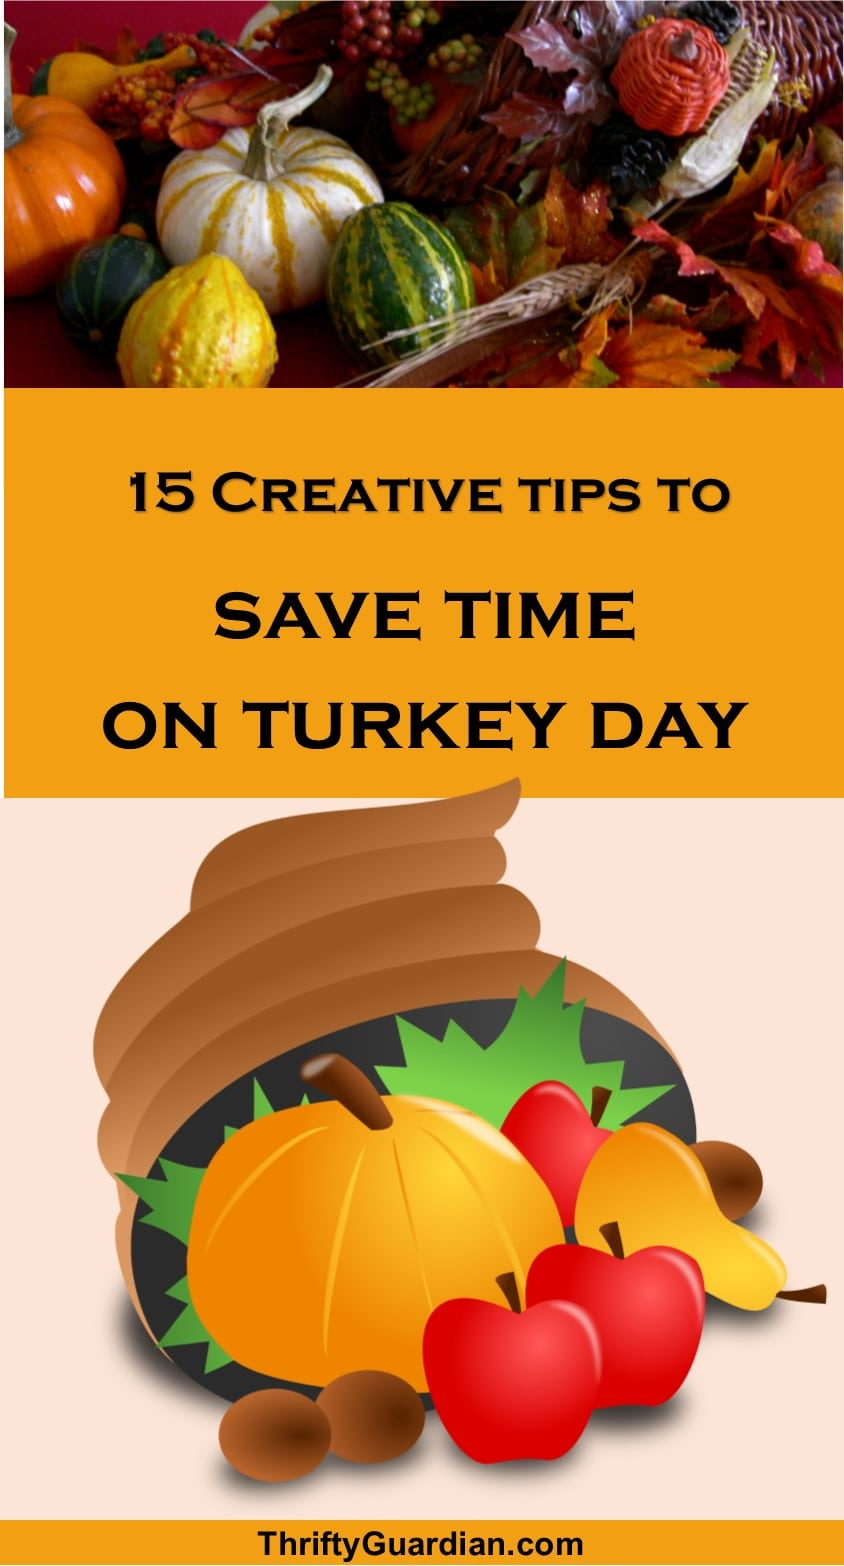 Save time on thanksgiving, thanksgiving hacks, cooking hacks, save time entertaining, kitchen hacks, thanksgiving tips, holiday tips